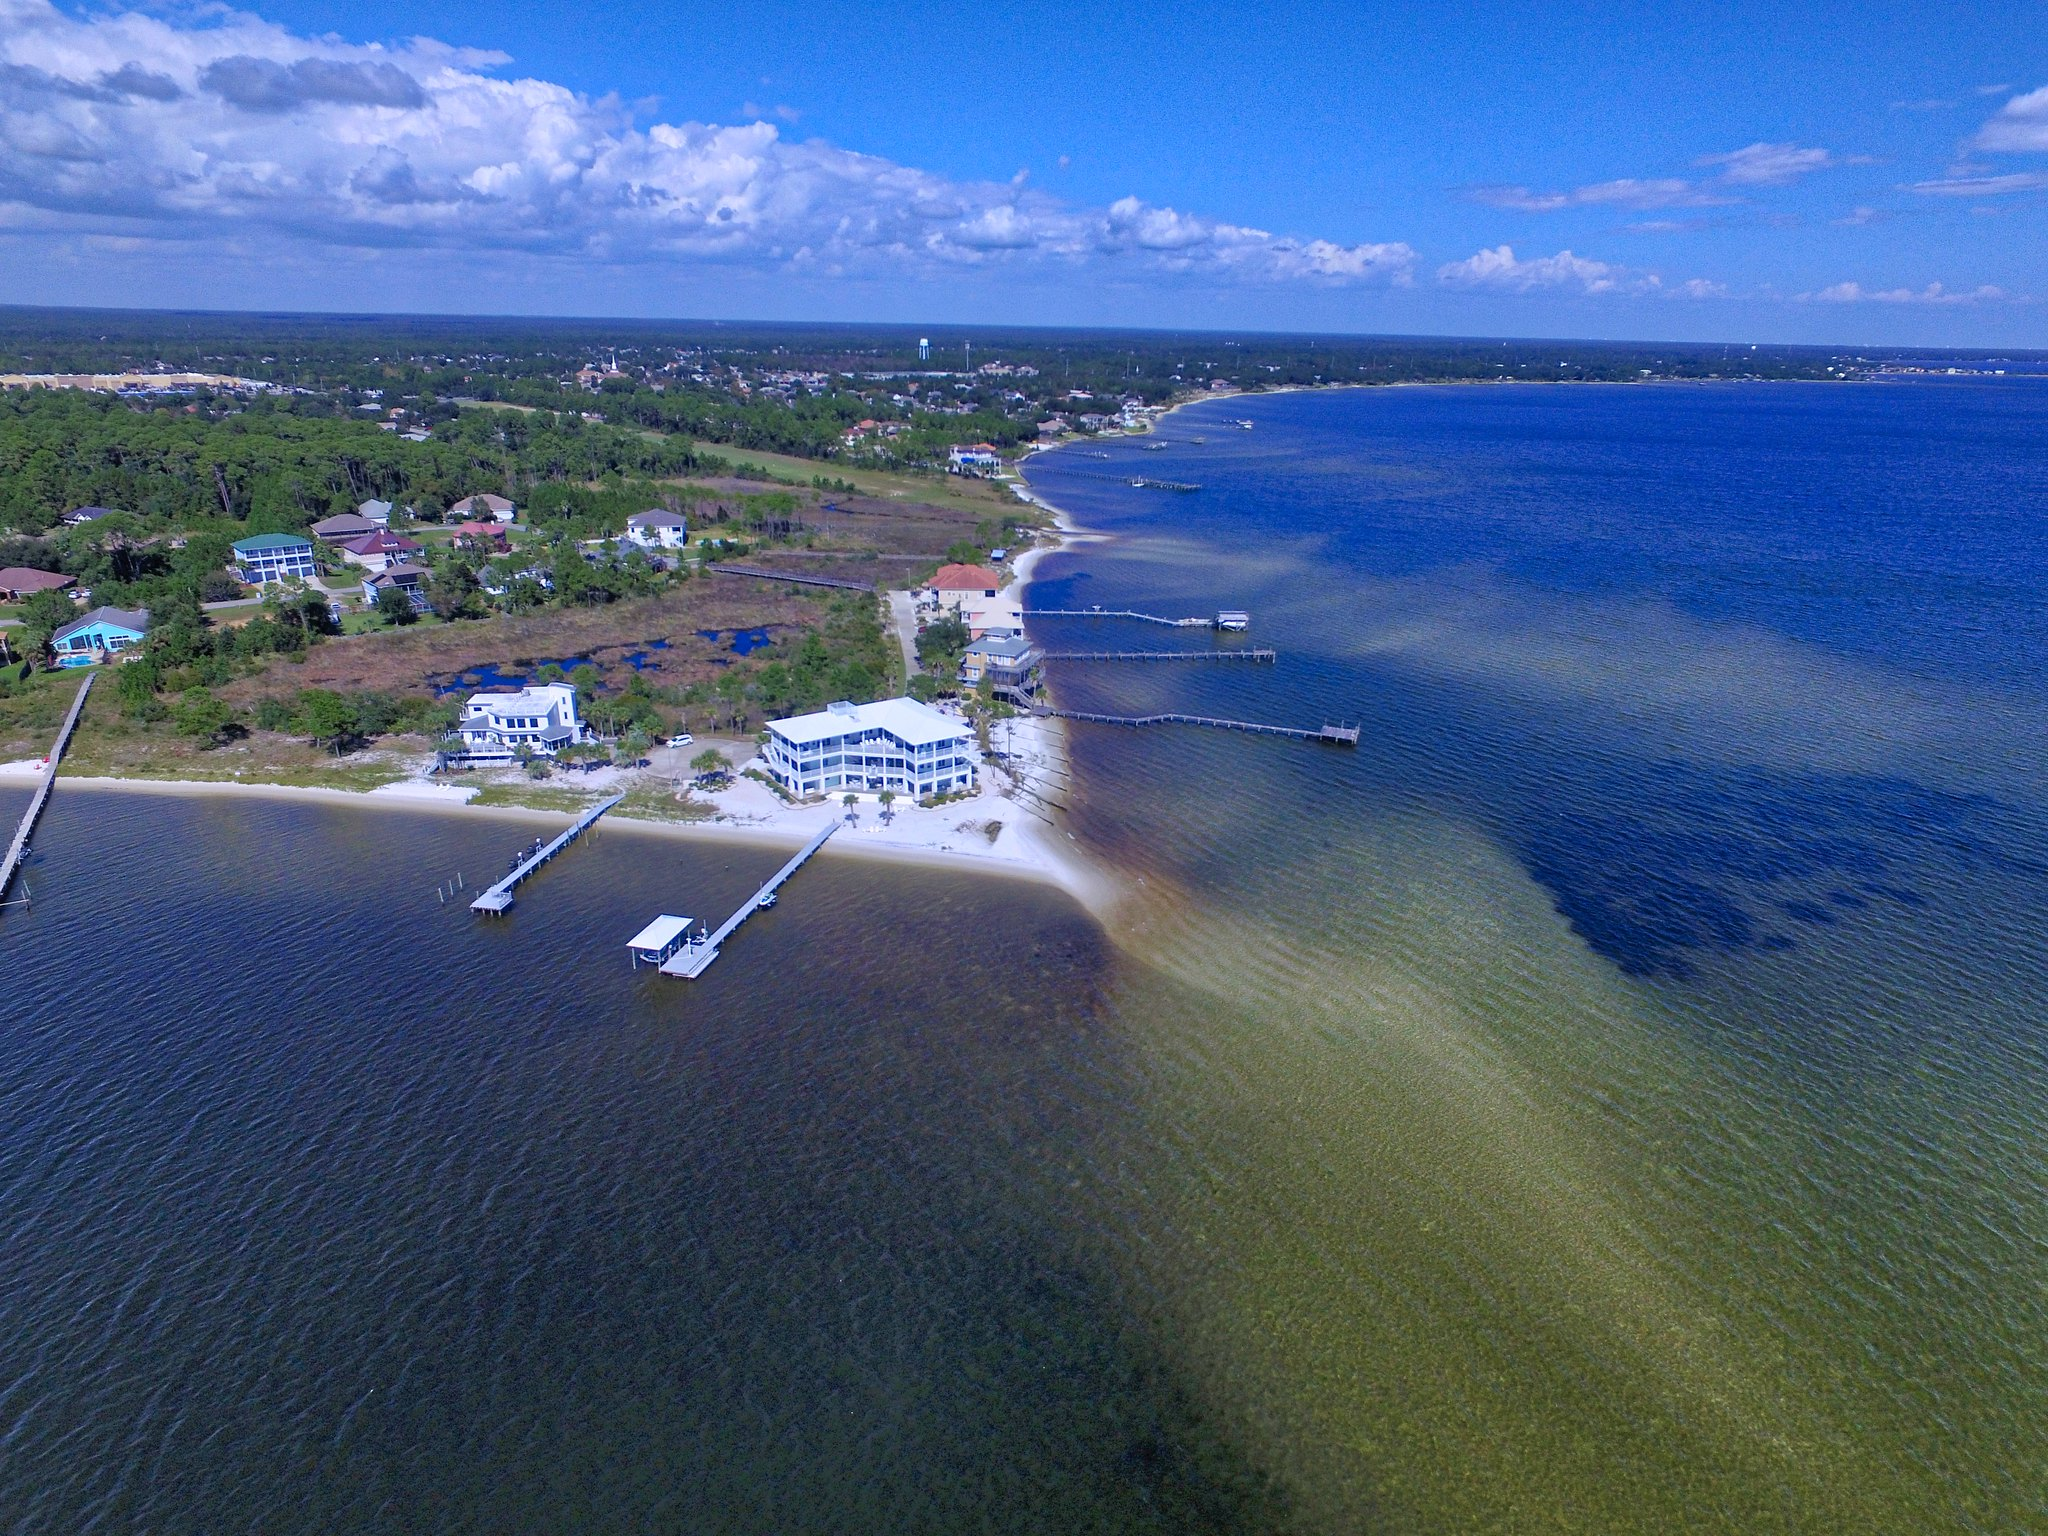 Stupendous Waterfront Homes For Sale In Navarre Florida Home Interior And Landscaping Oversignezvosmurscom